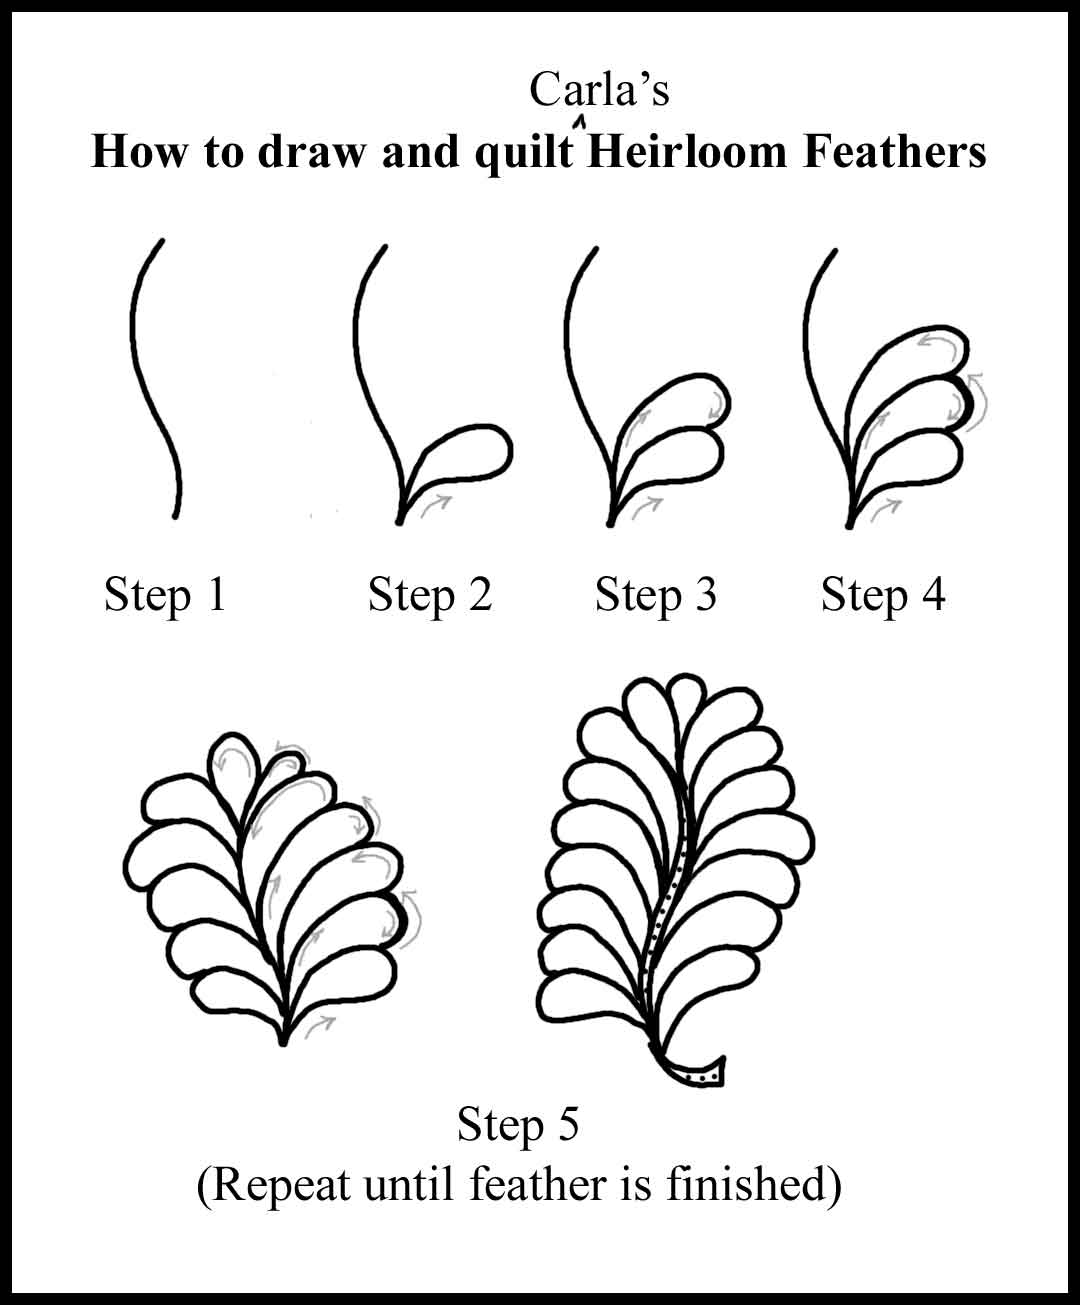 How to quilt Various Feathers, etc. | Carla Barrett : feather quilting stencils - Adamdwight.com